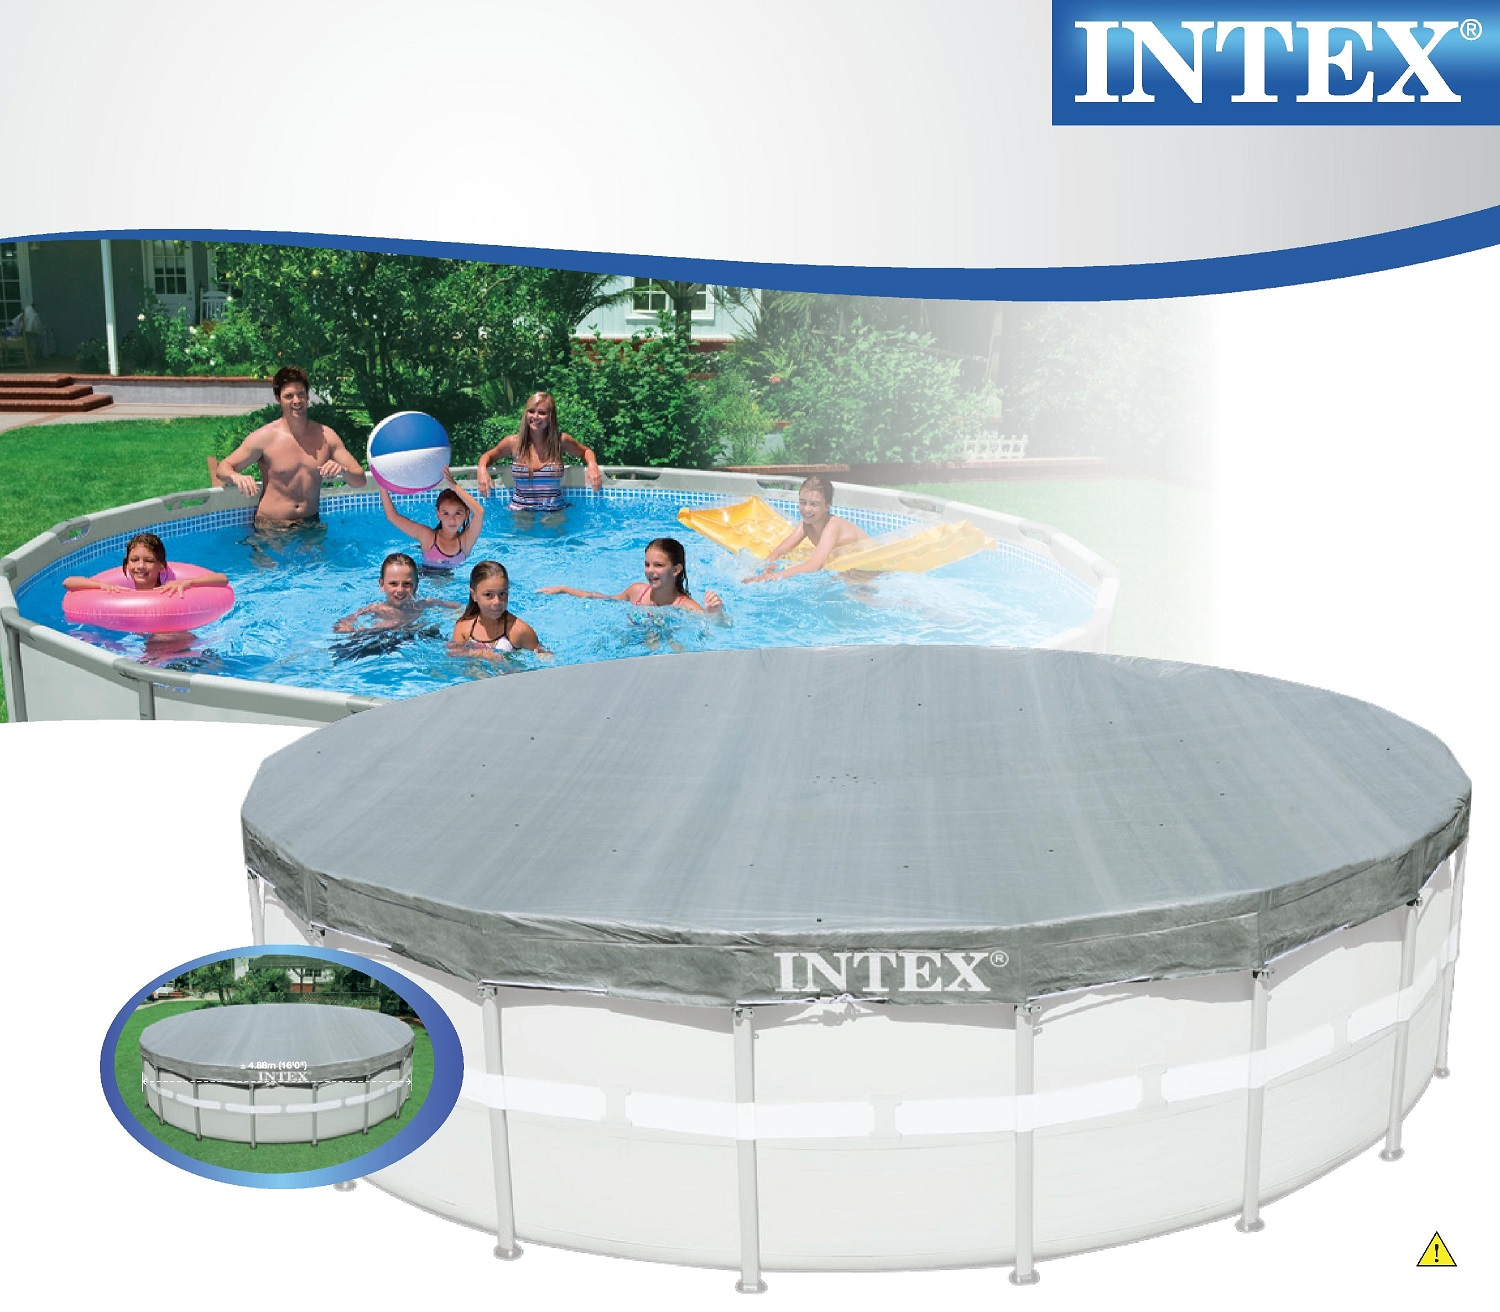 Intex 28040 swimming pool deluxe uv abdeckplane frame pool for Swimmingpool abdeckplane